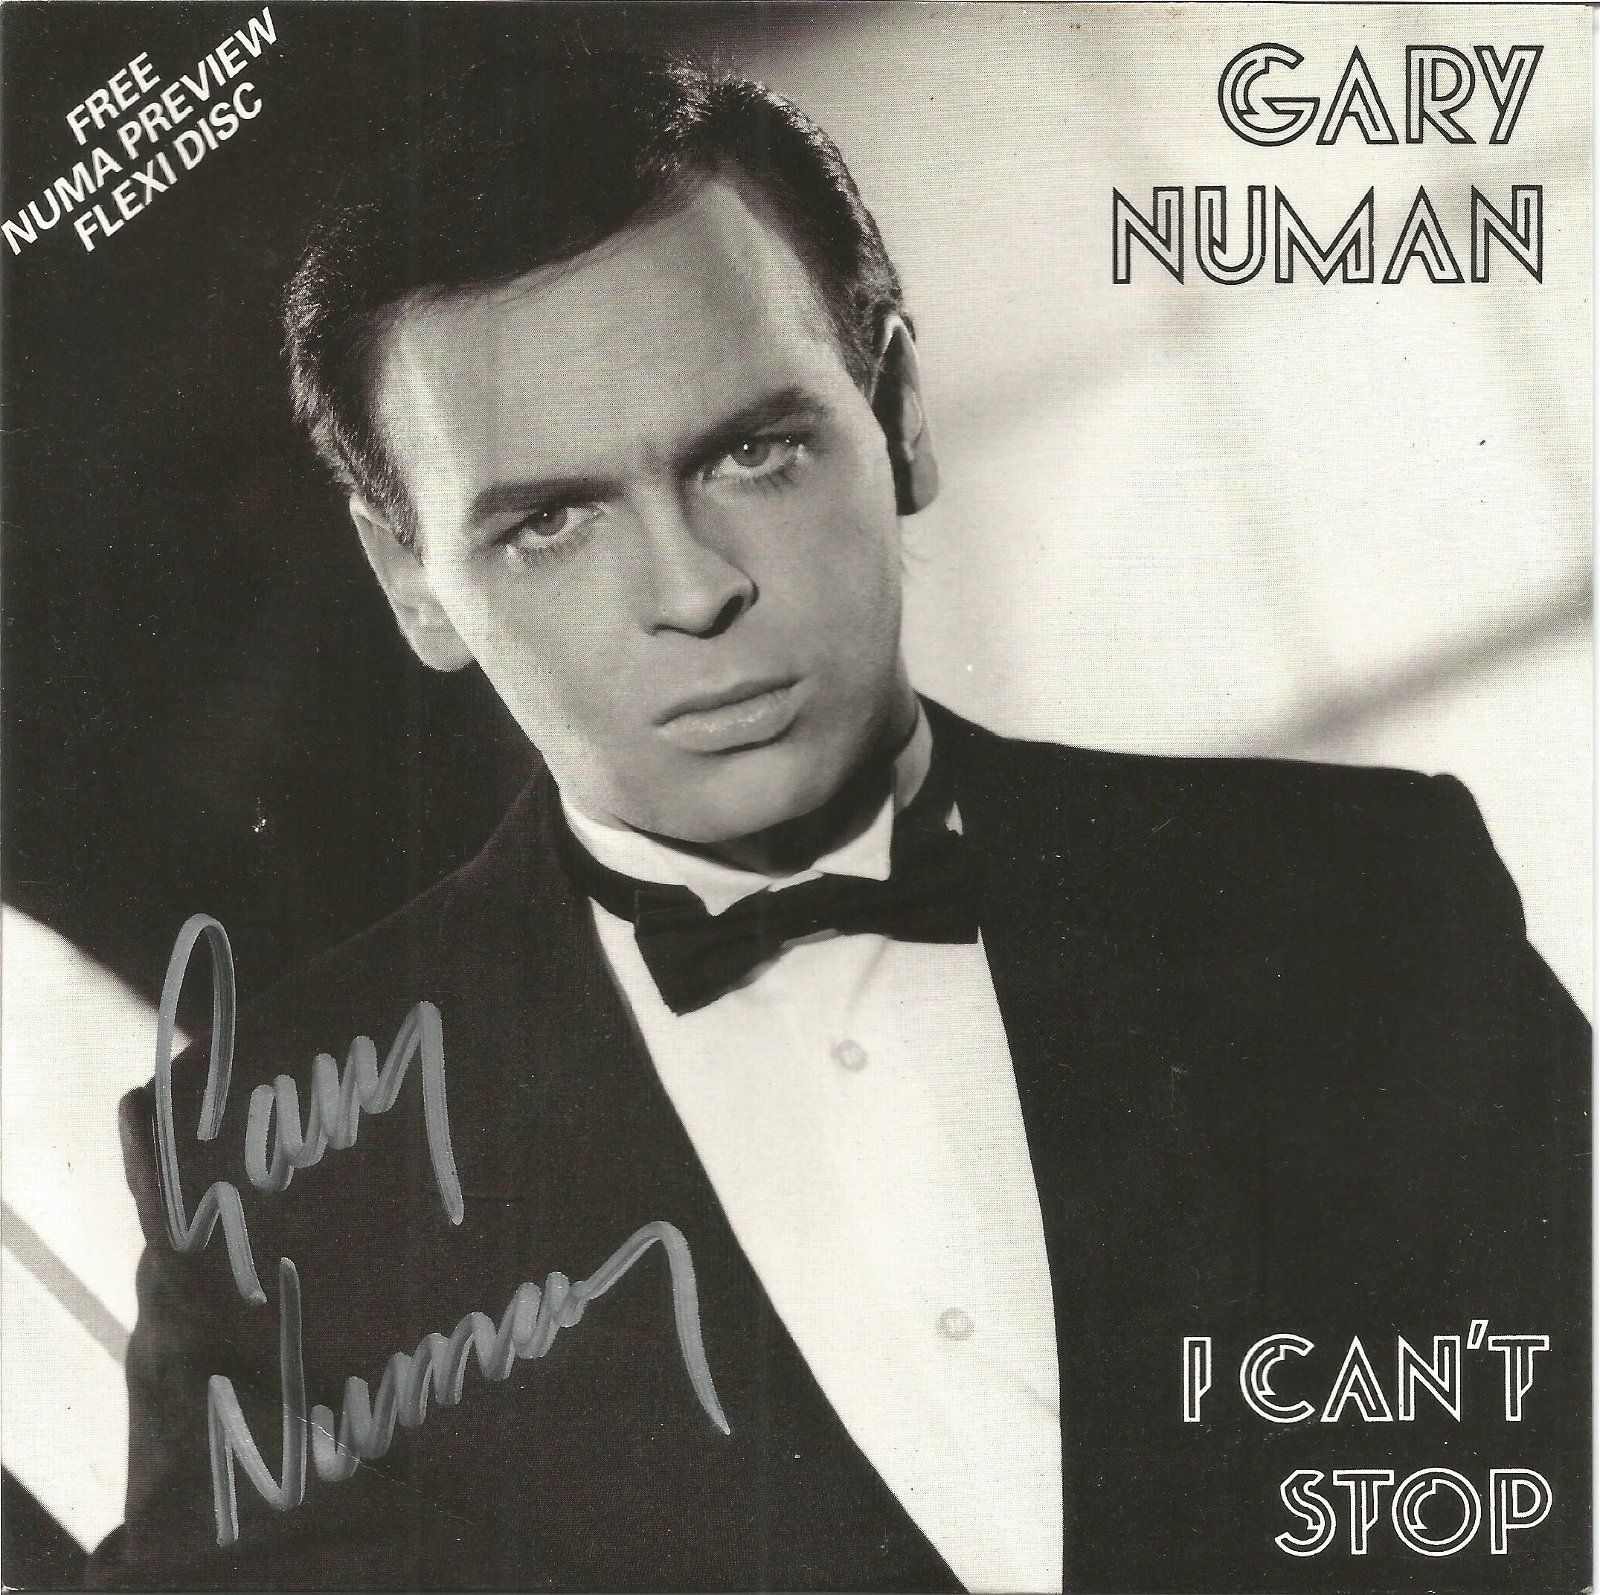 Gary Numan signed 45rpm record sleeve of I can't stop.